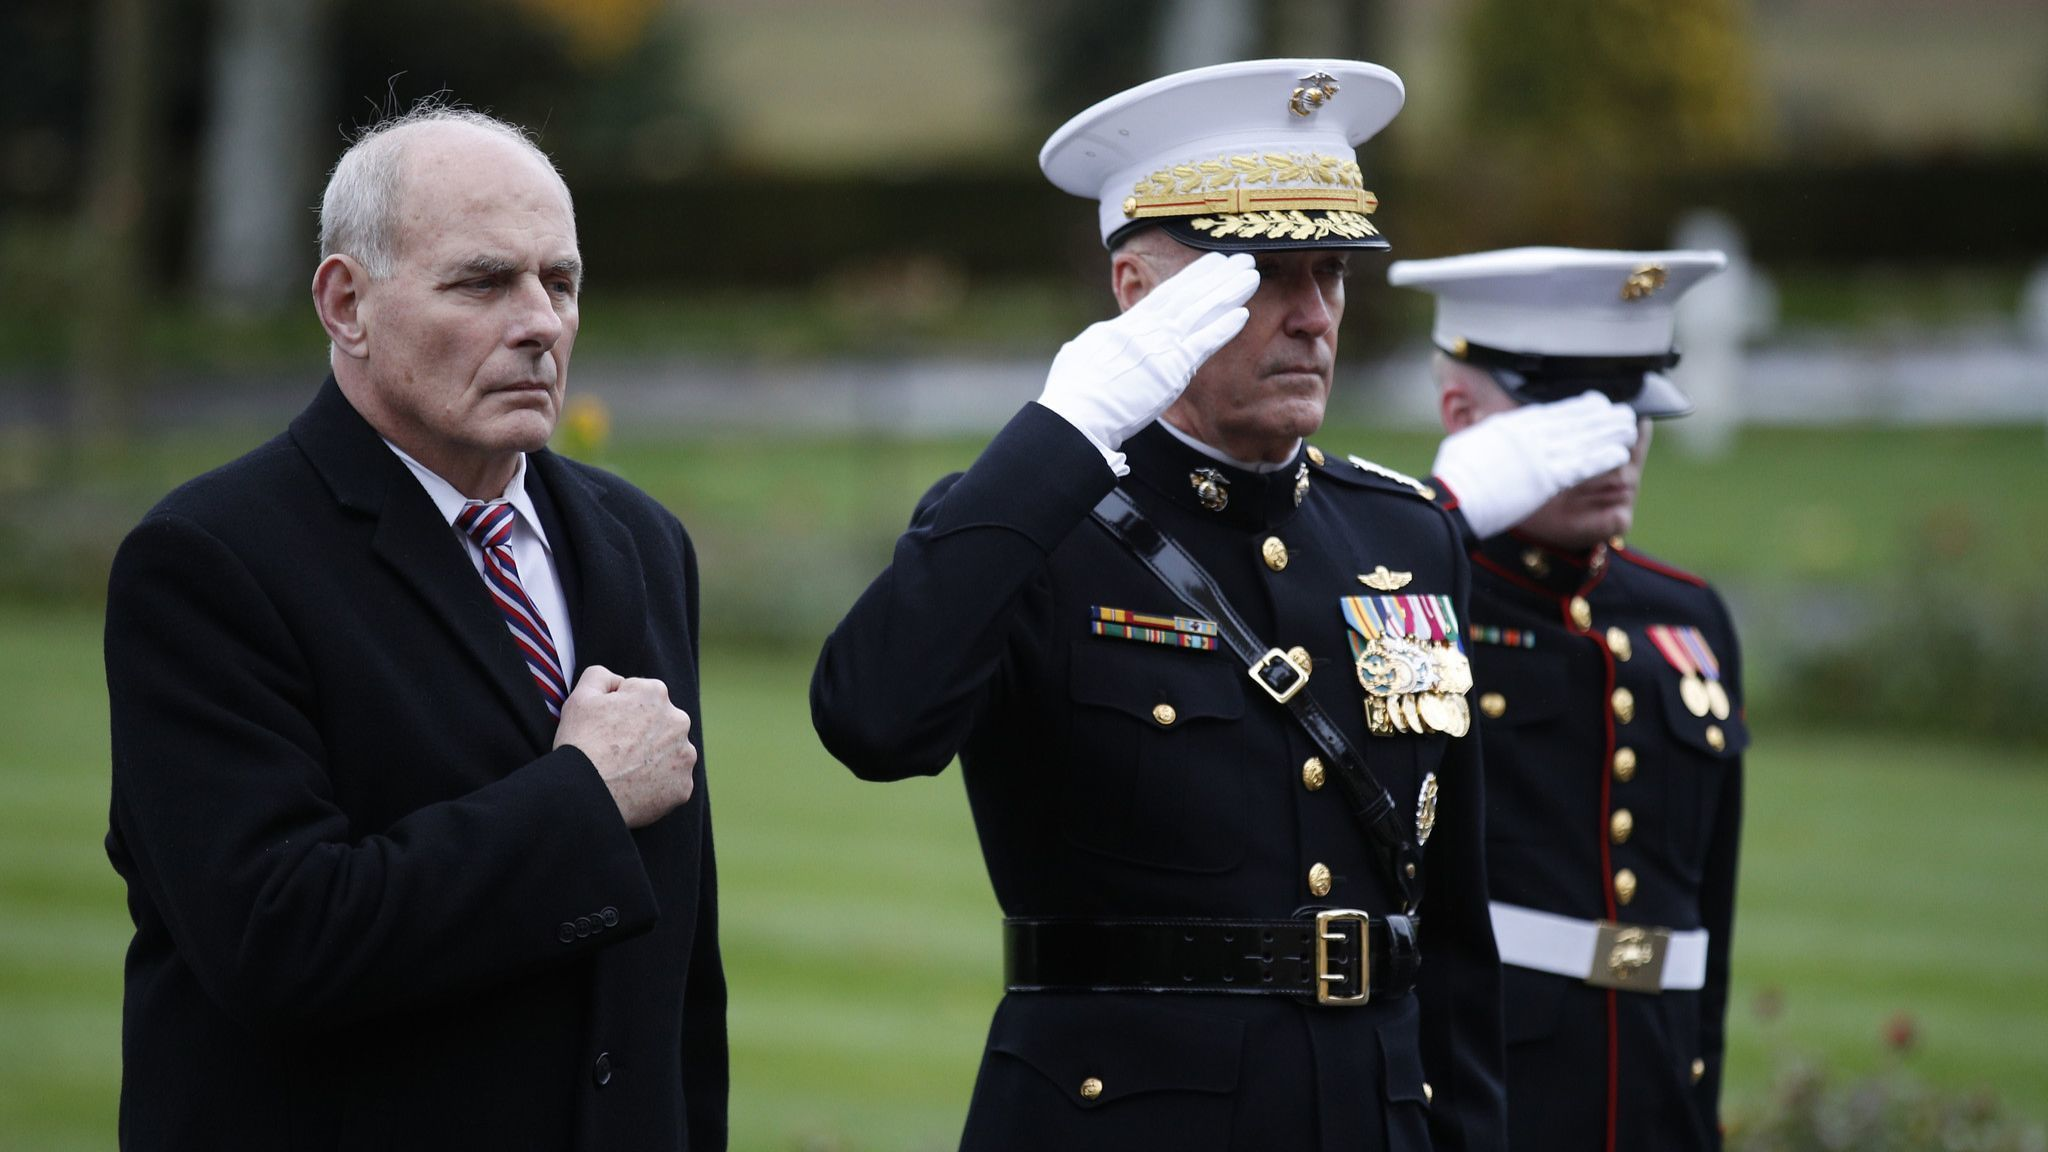 Trump shows his contempt for the men and women in uniform